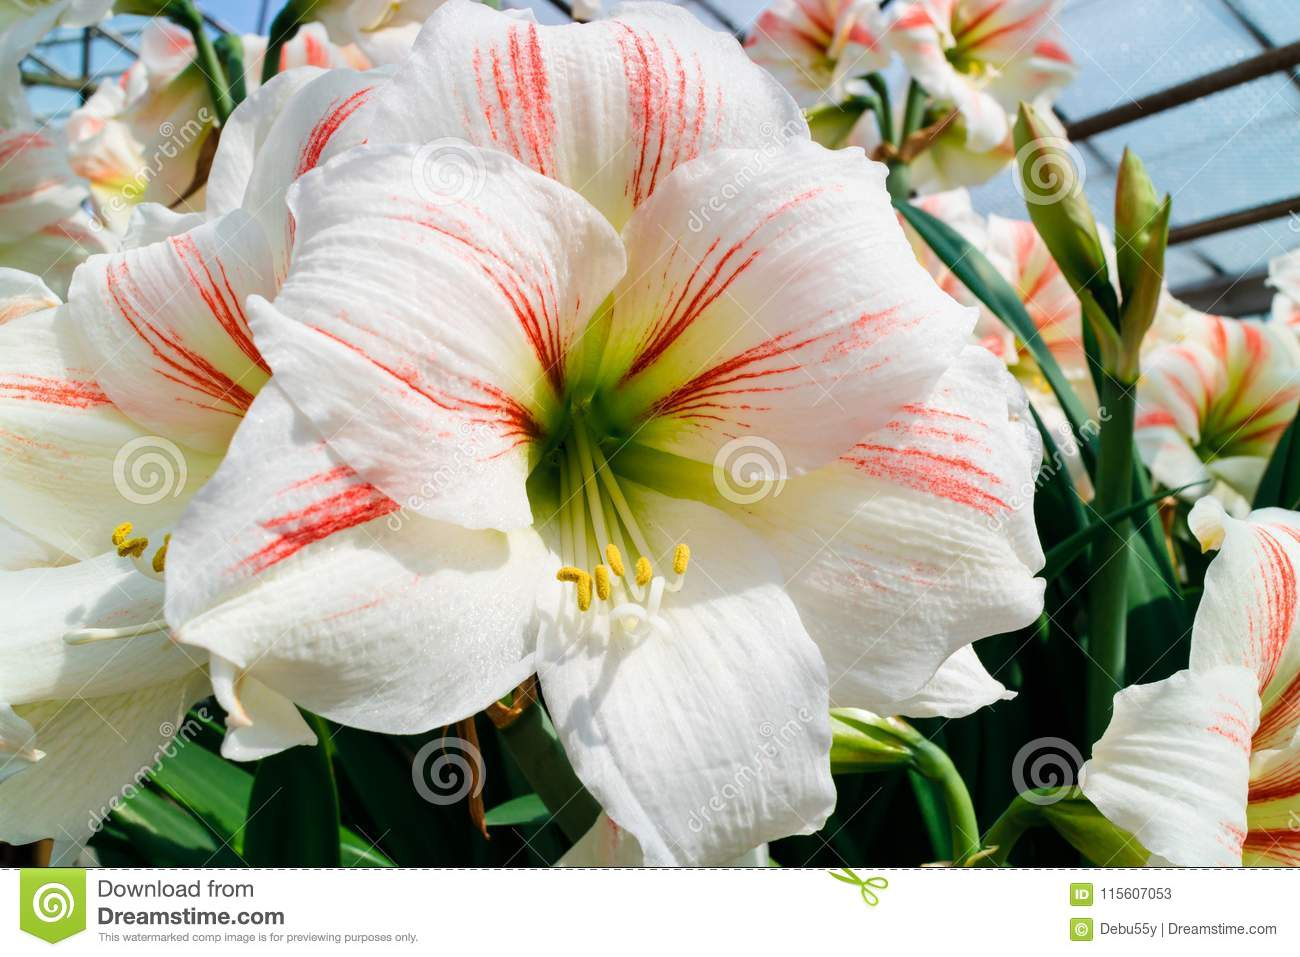 White With Pink Stripes Amaryllis Flower Close Up Stock Image